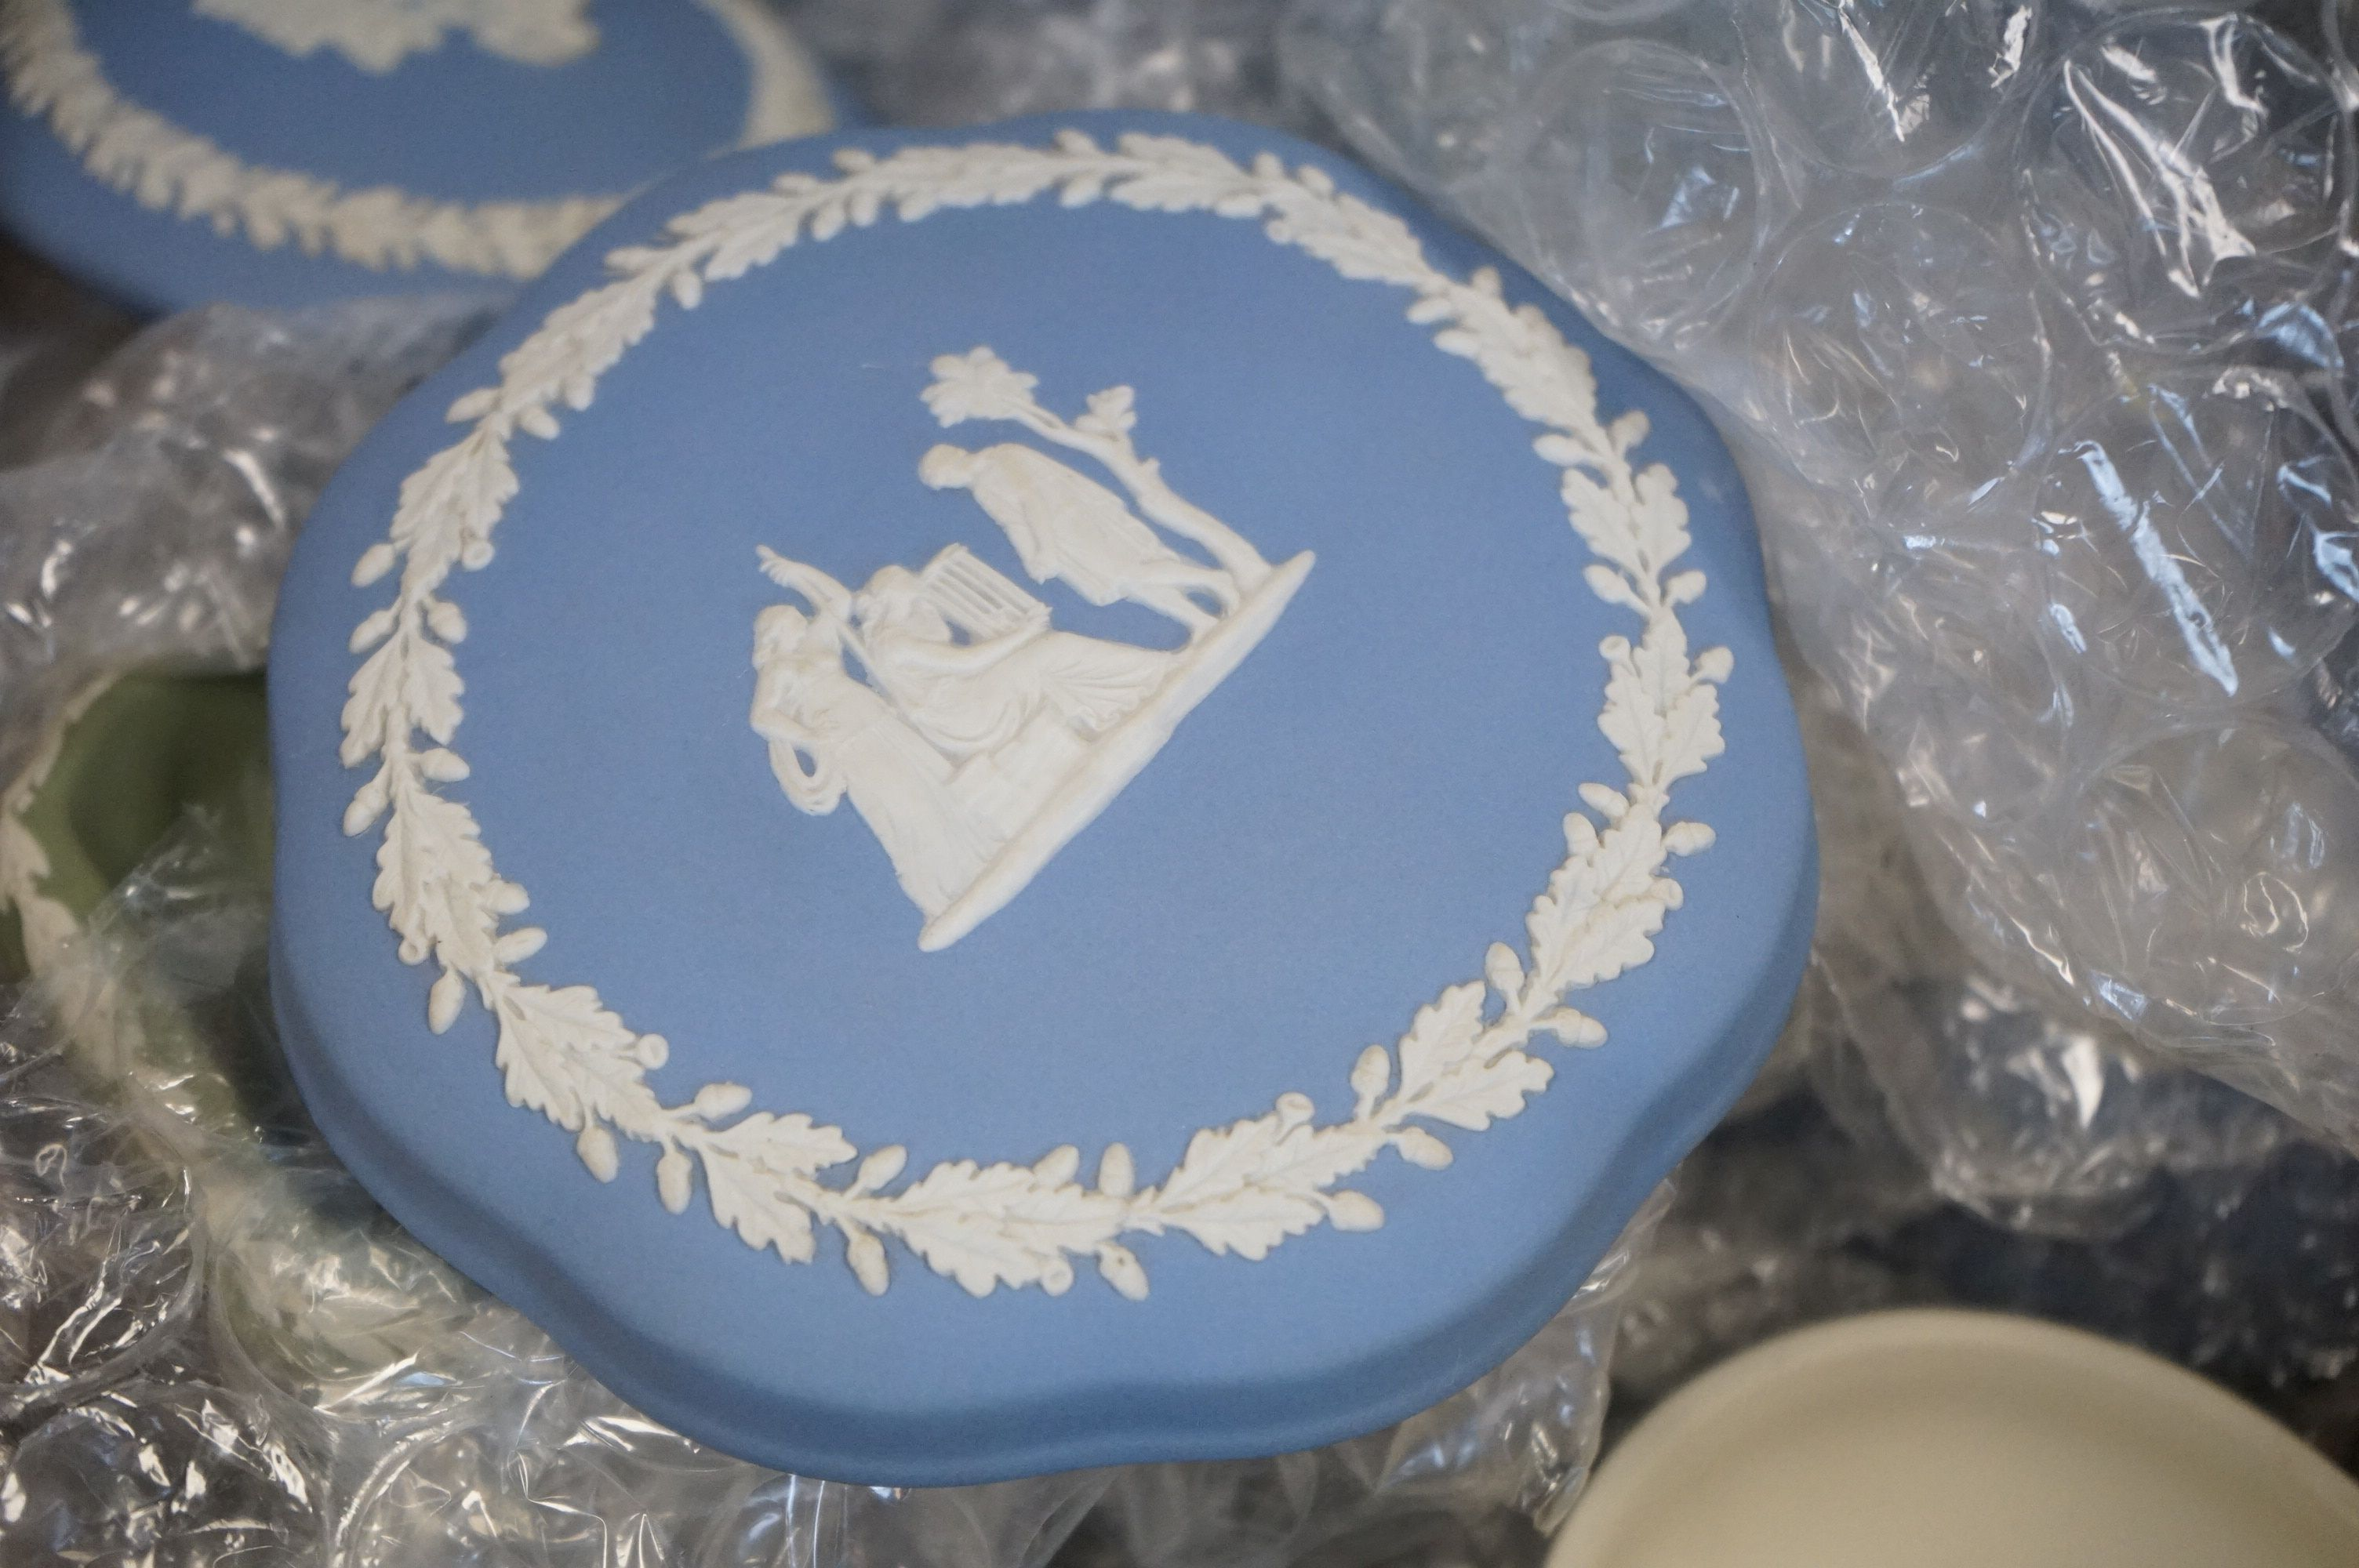 A collection of Wedgwood jasper ware to include trinket boxes and pin dishes. - Image 2 of 3